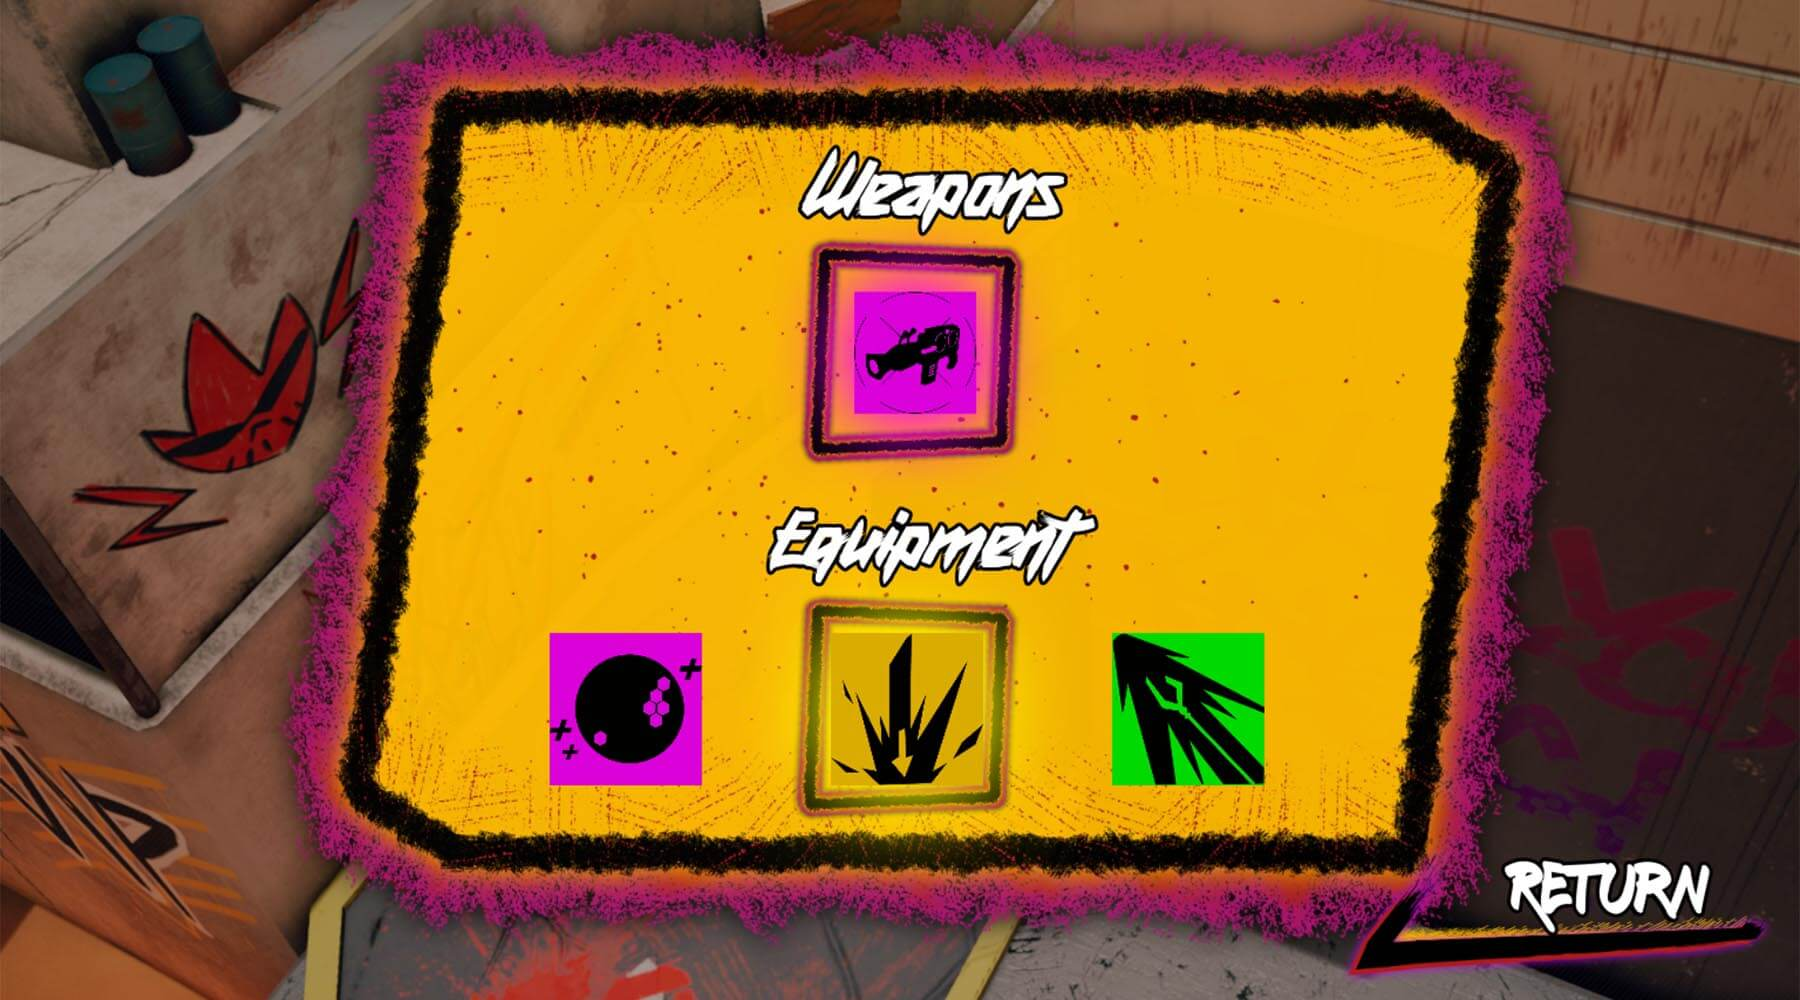 In-game screenshot of weapon and equipment selection screen.